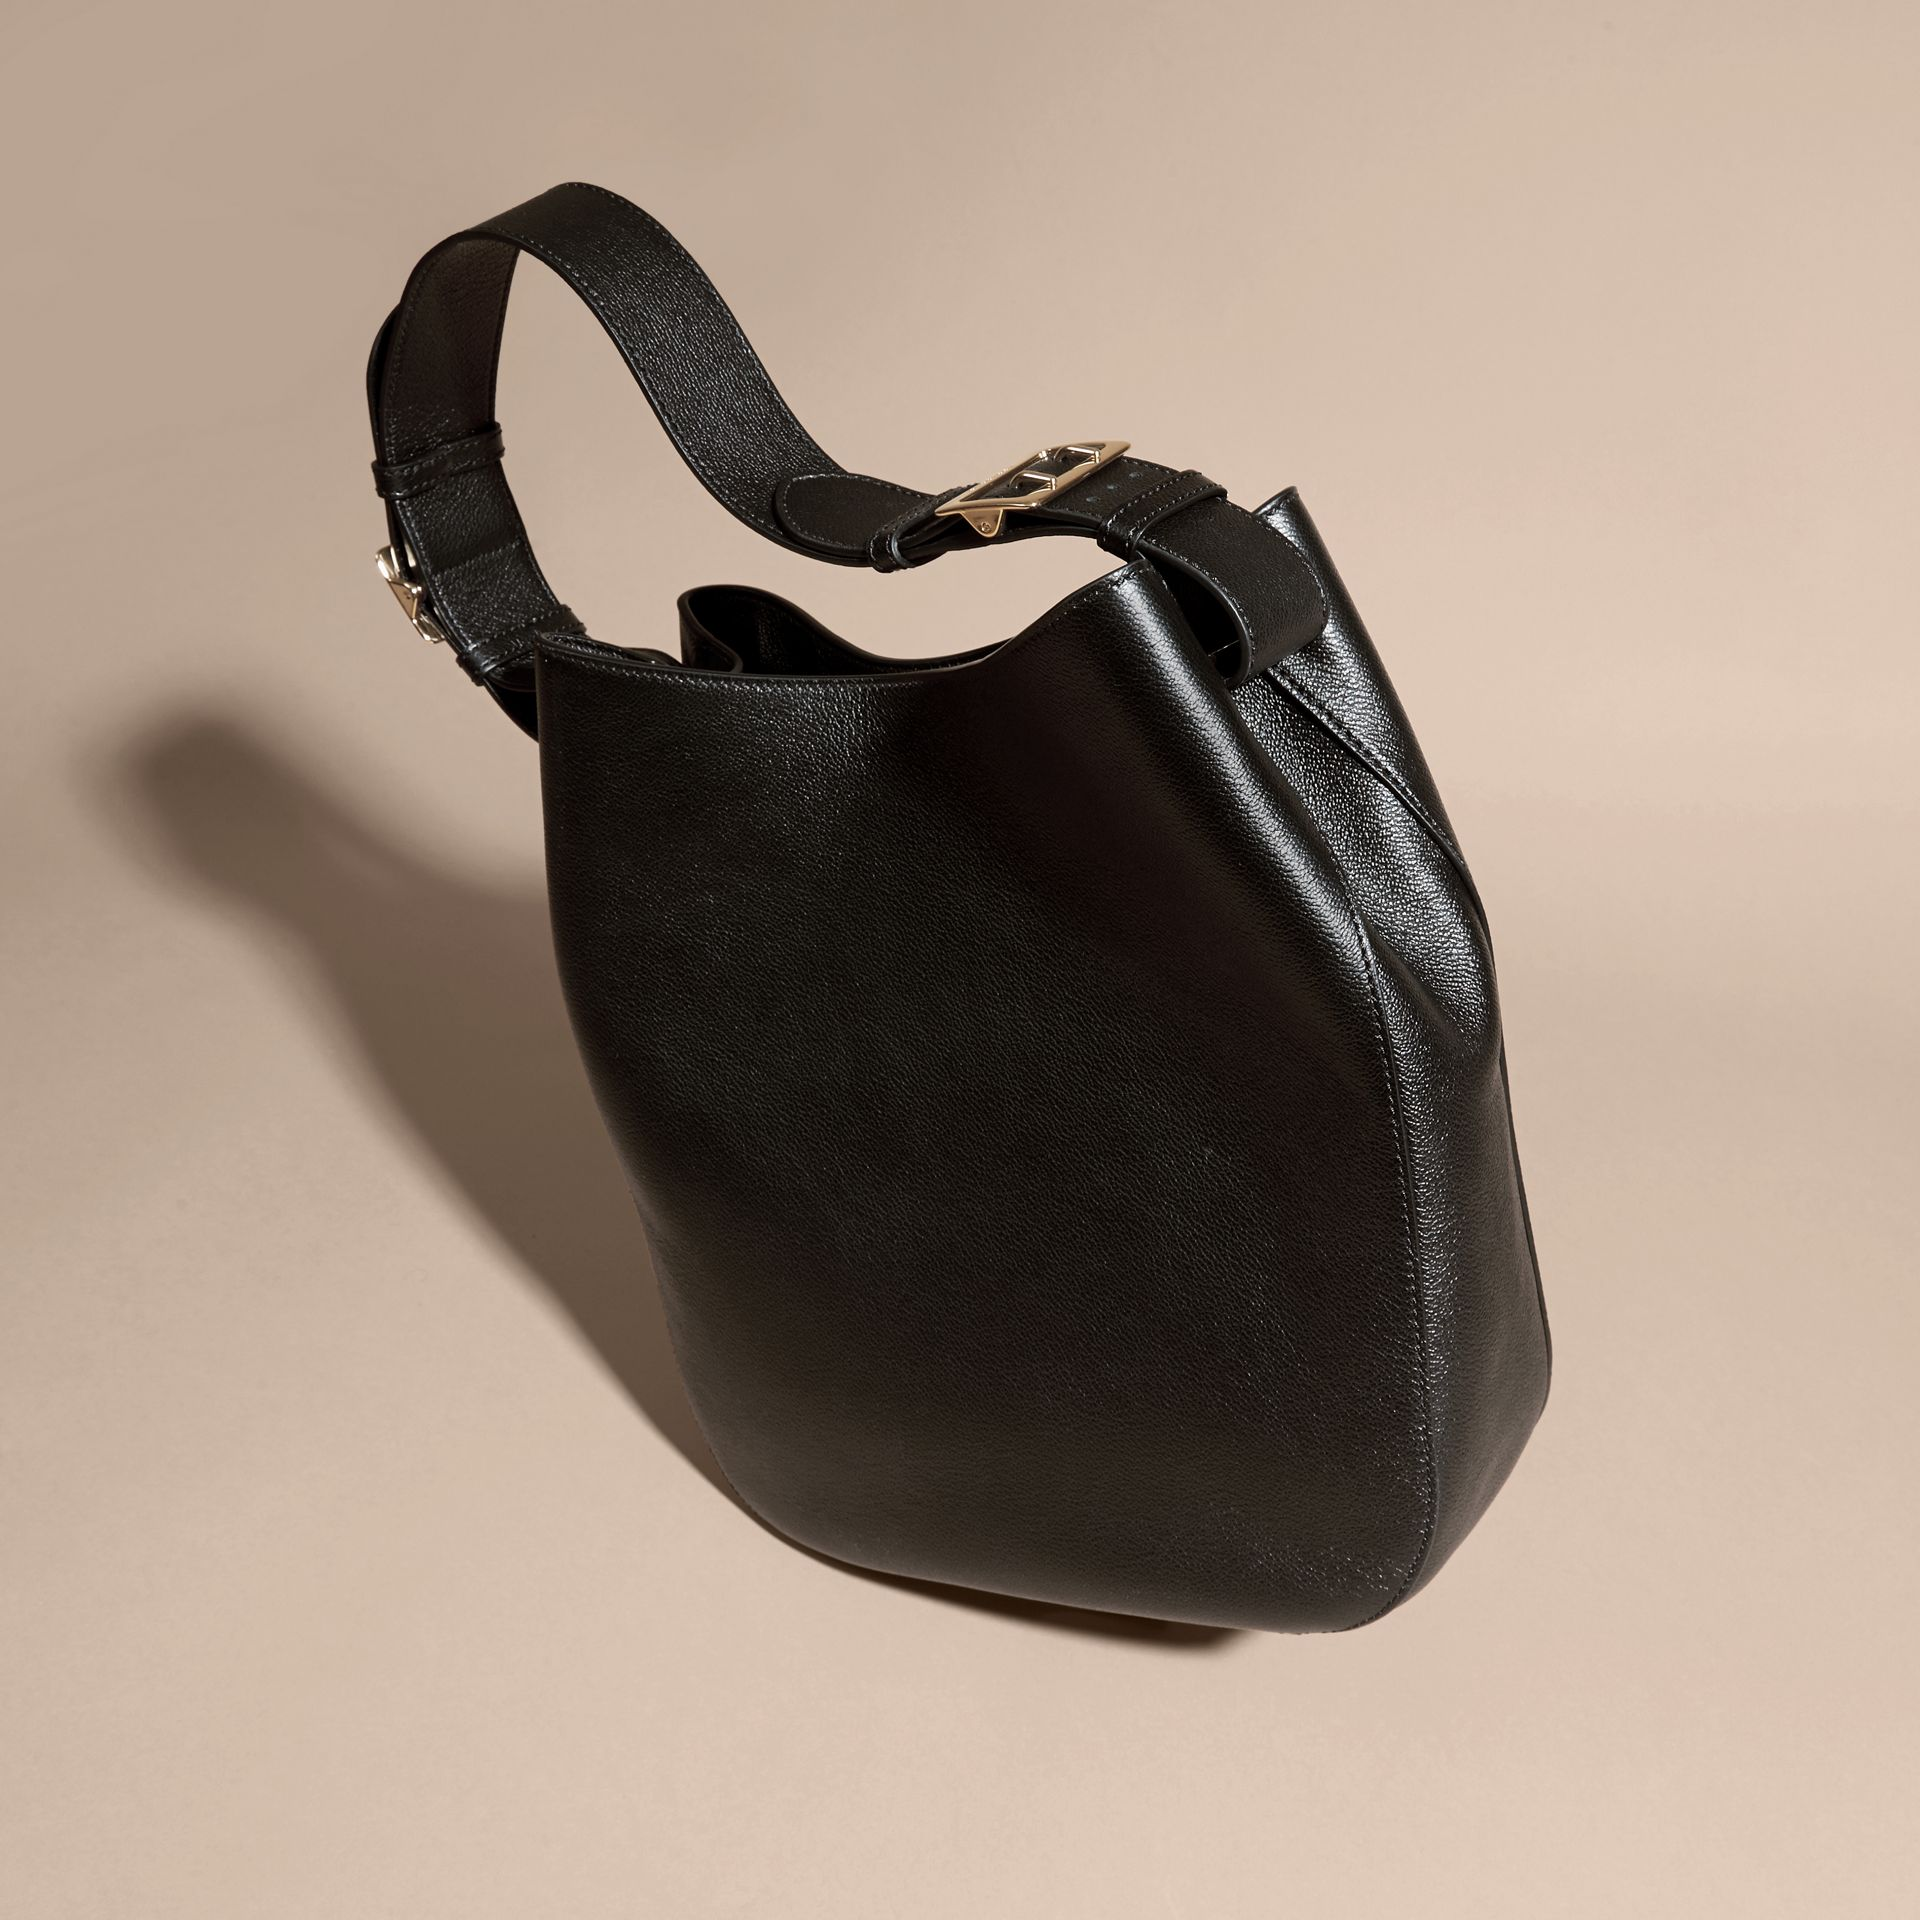 Black Textured Leather Shoulder Bag Black - gallery image 4